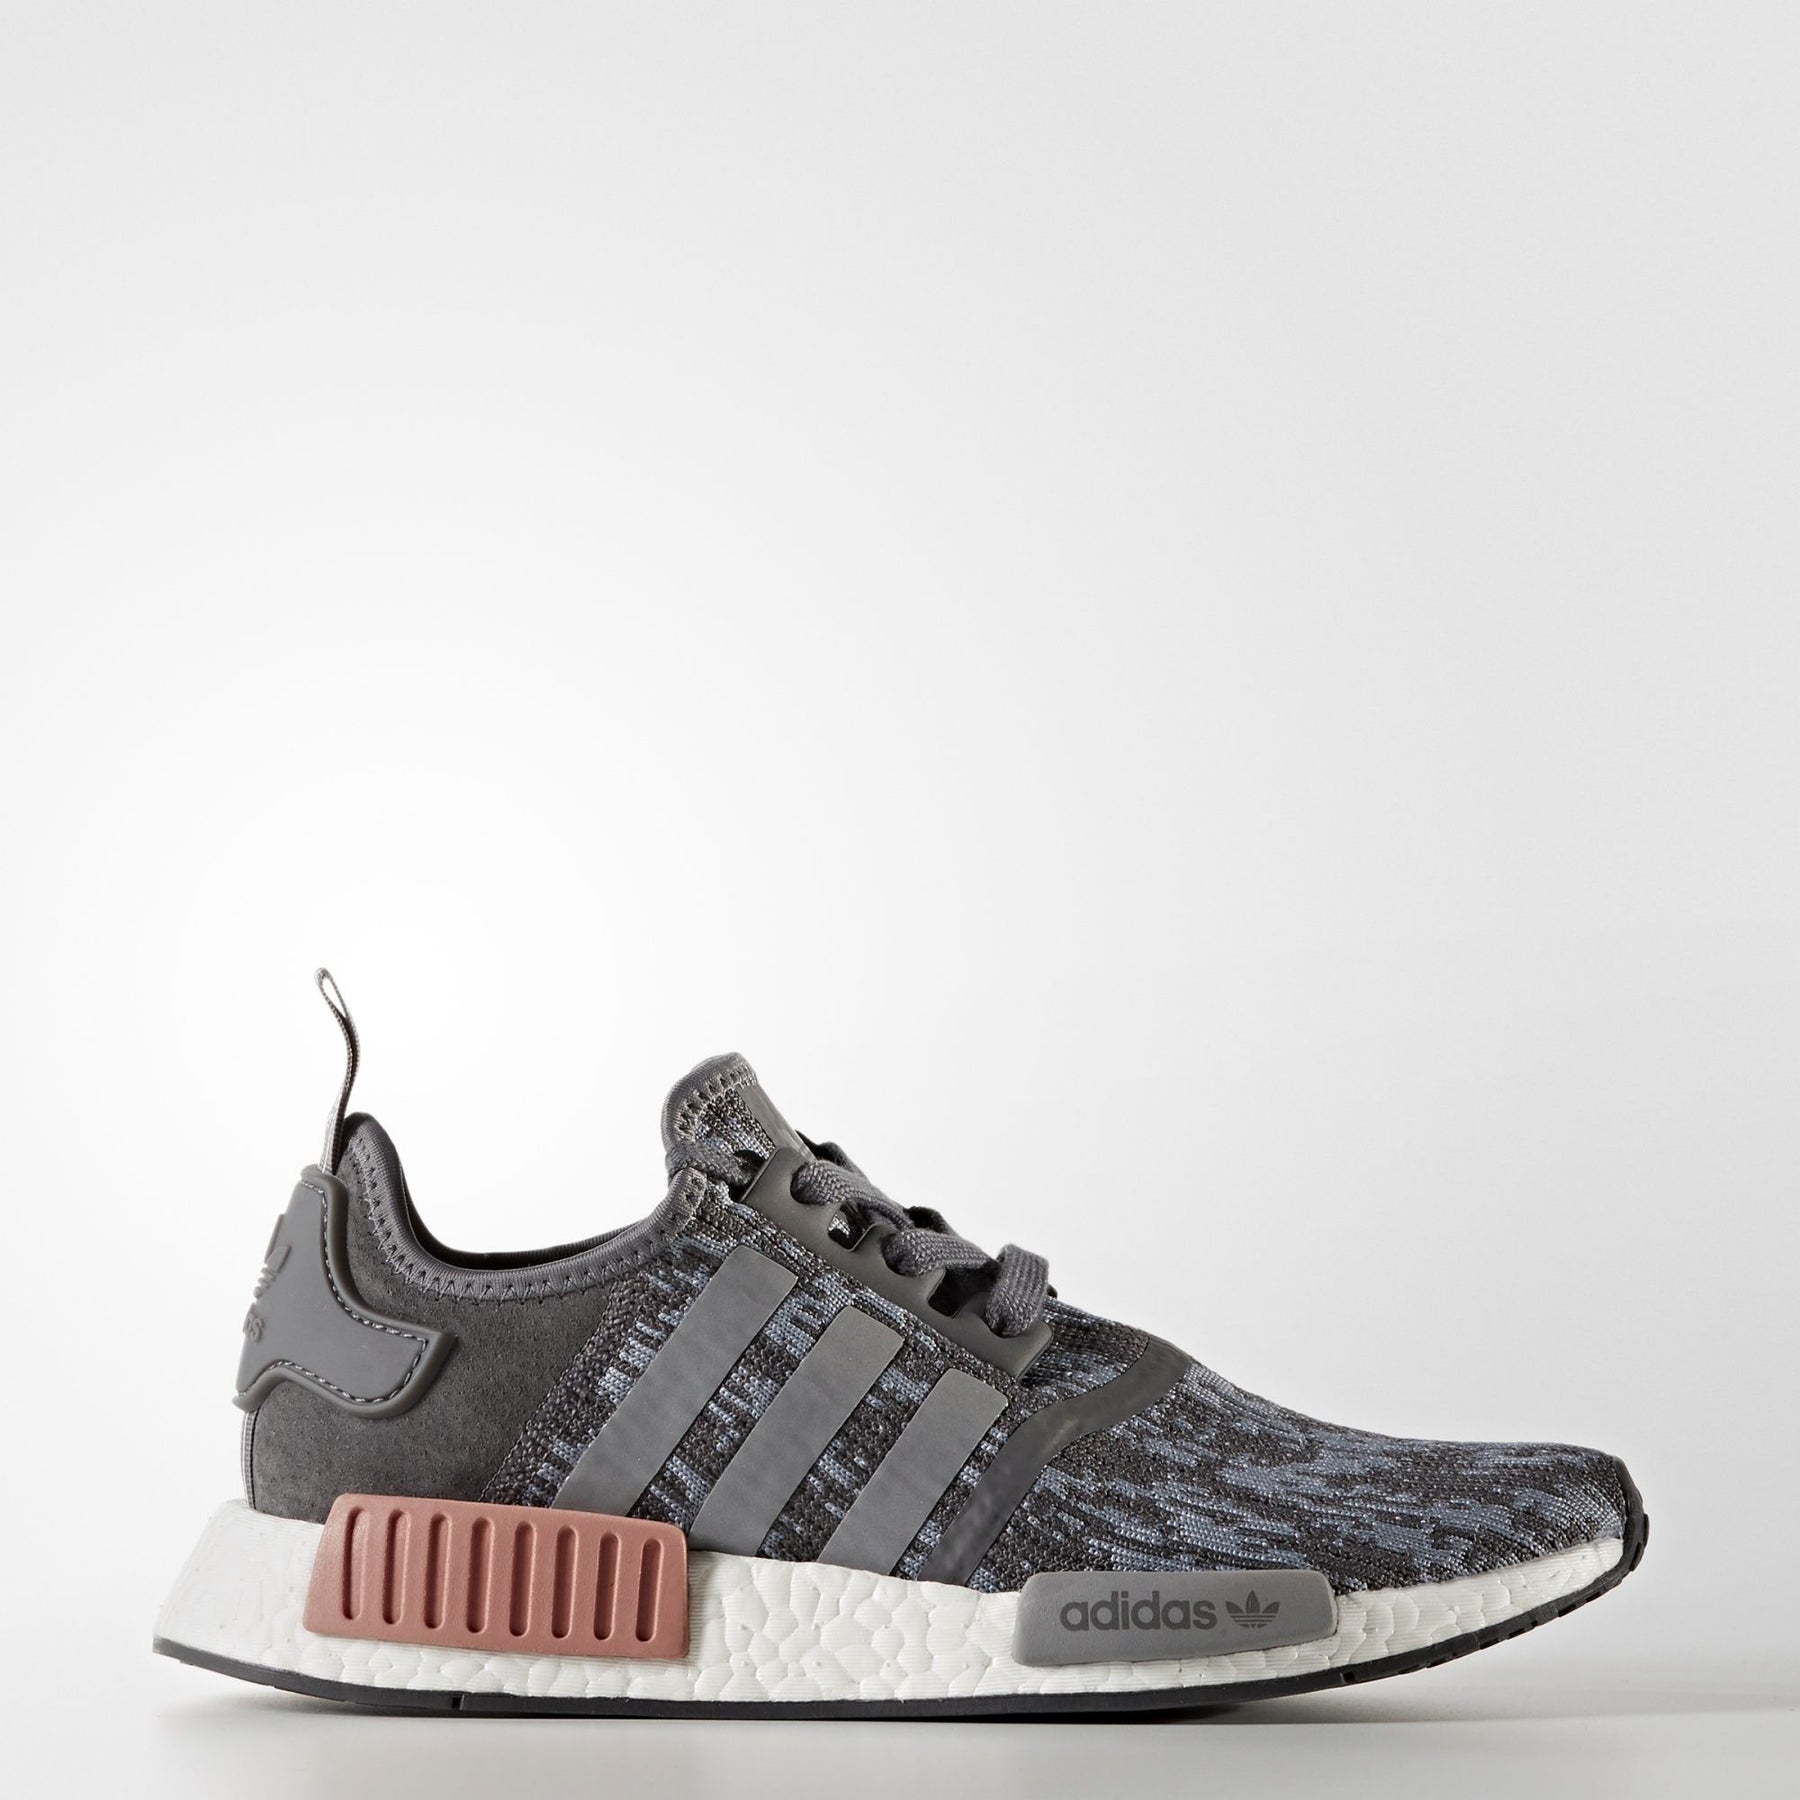 61b08f0fb NMD R1 Raw Grey - DistriSneaks